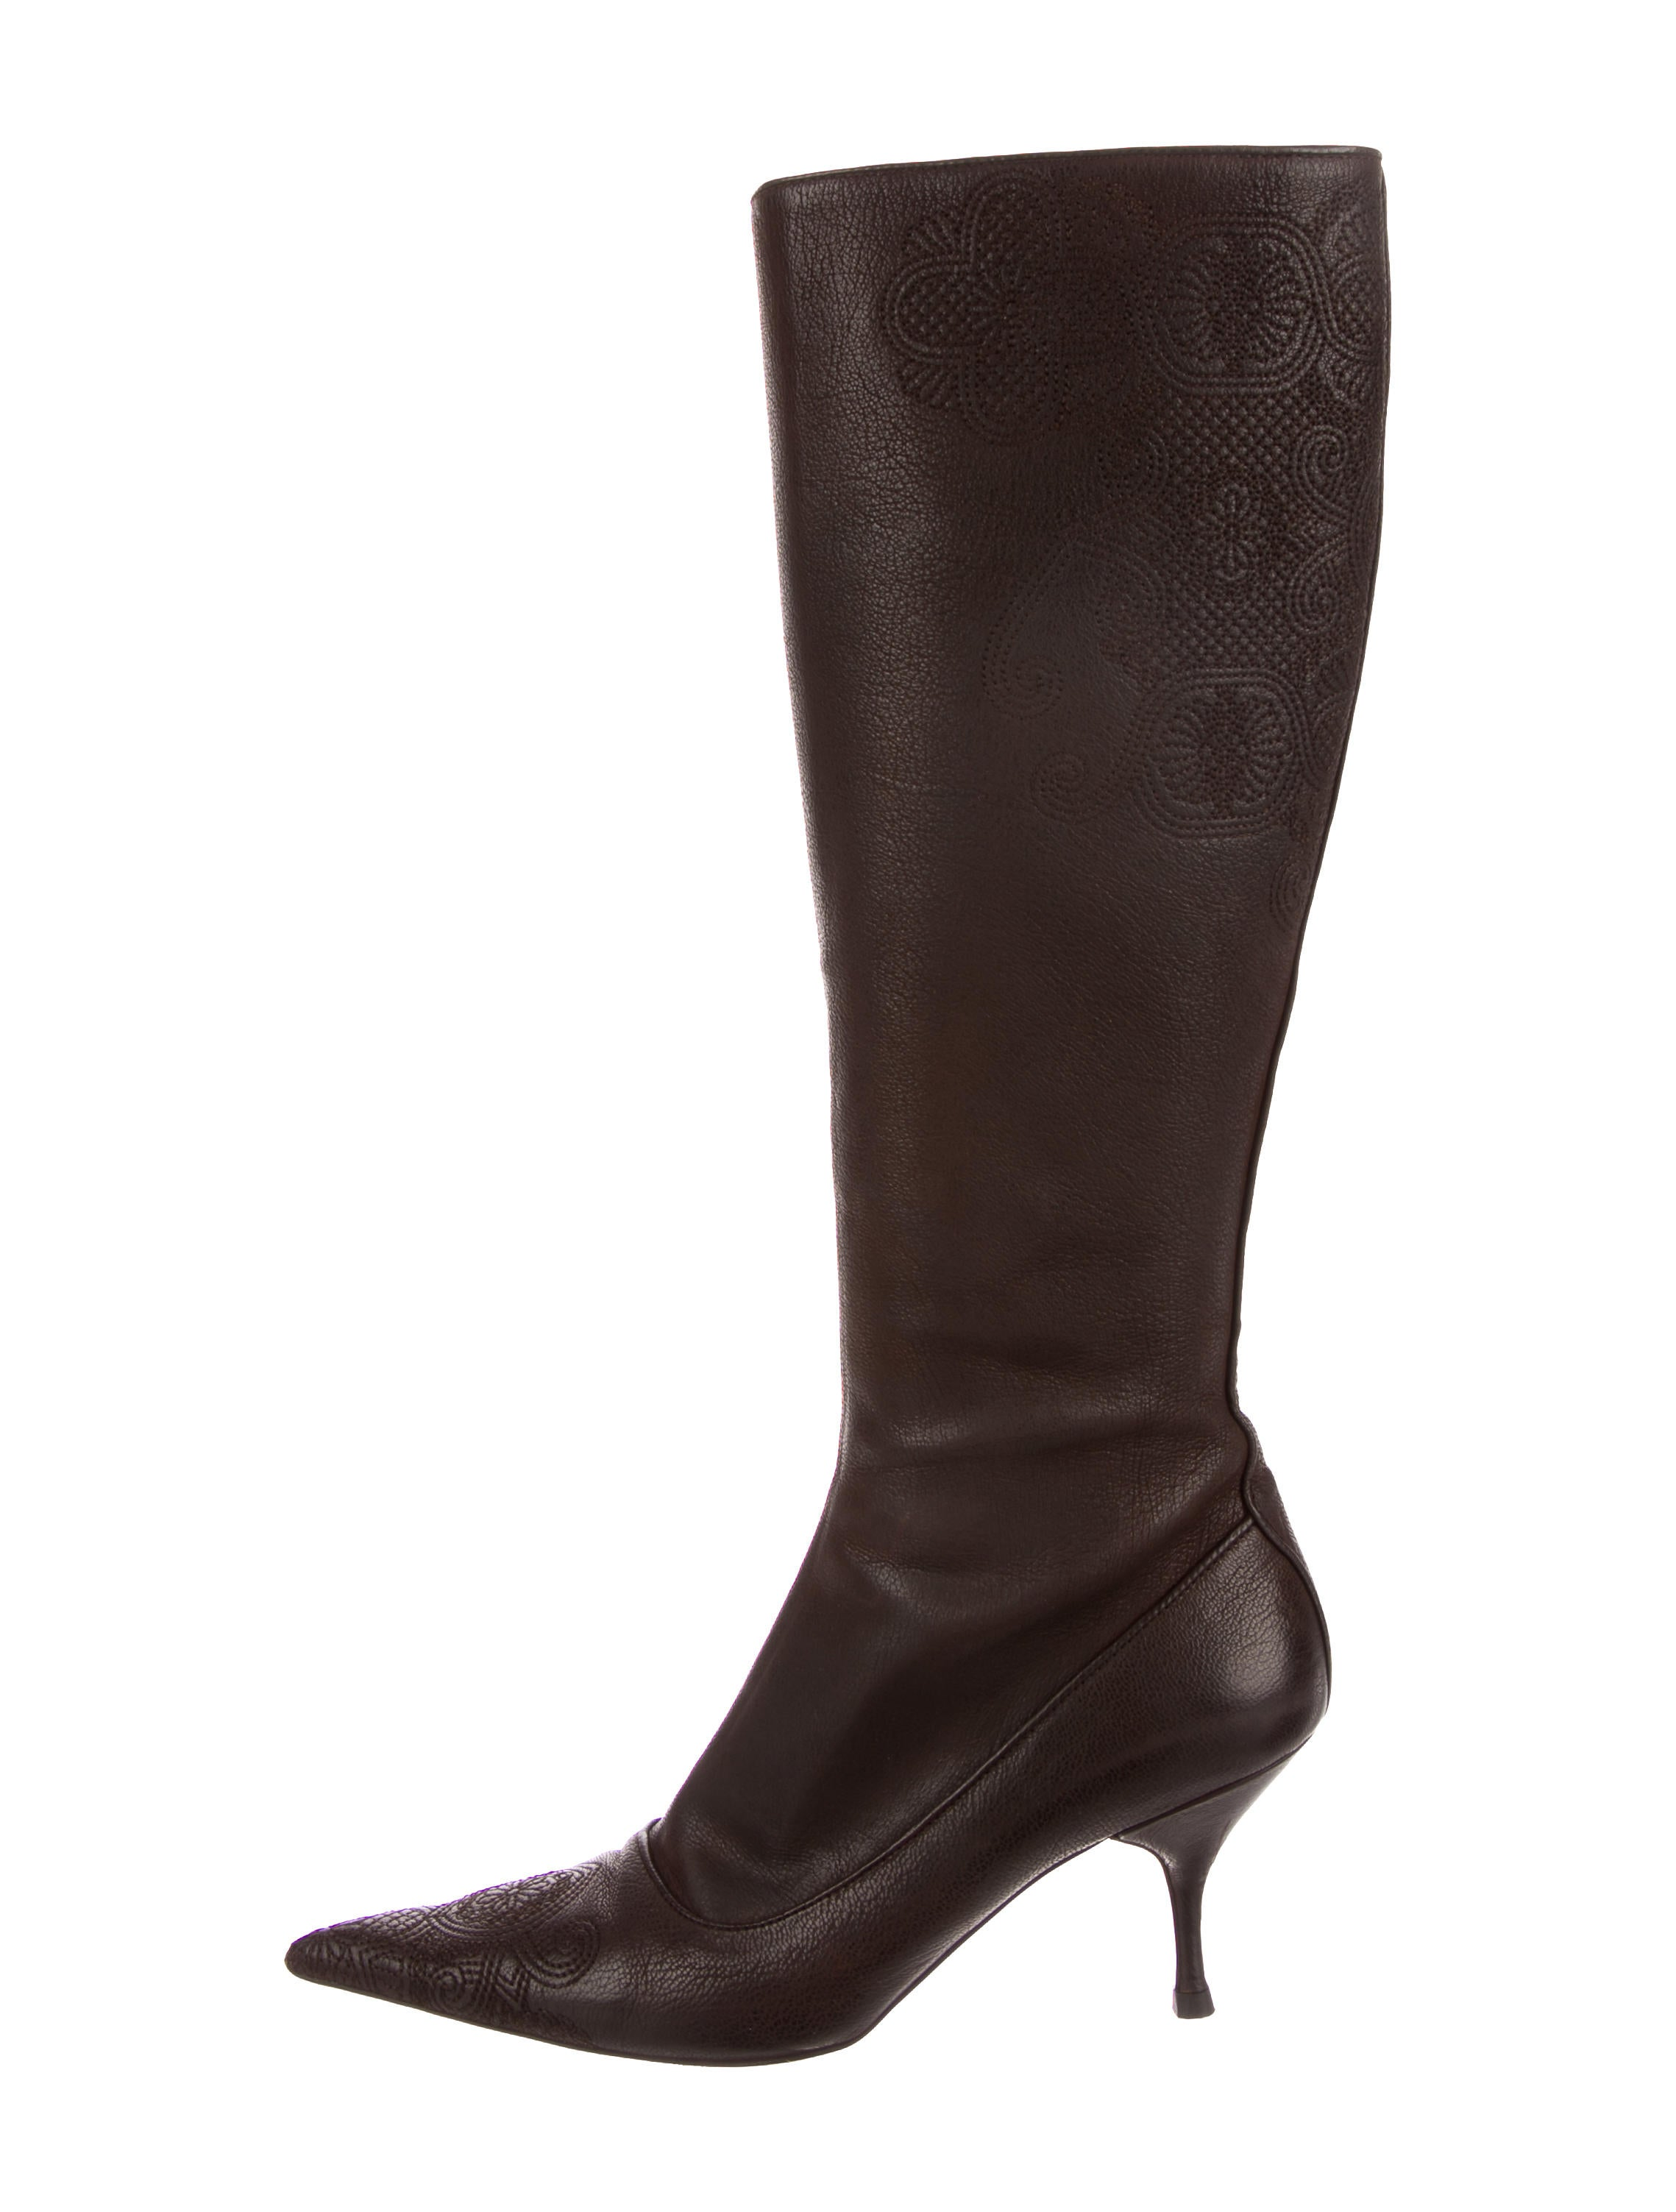 sale order Prada Embroidered Knee-High Boots cheap sale websites get authentic for sale DH3xJ